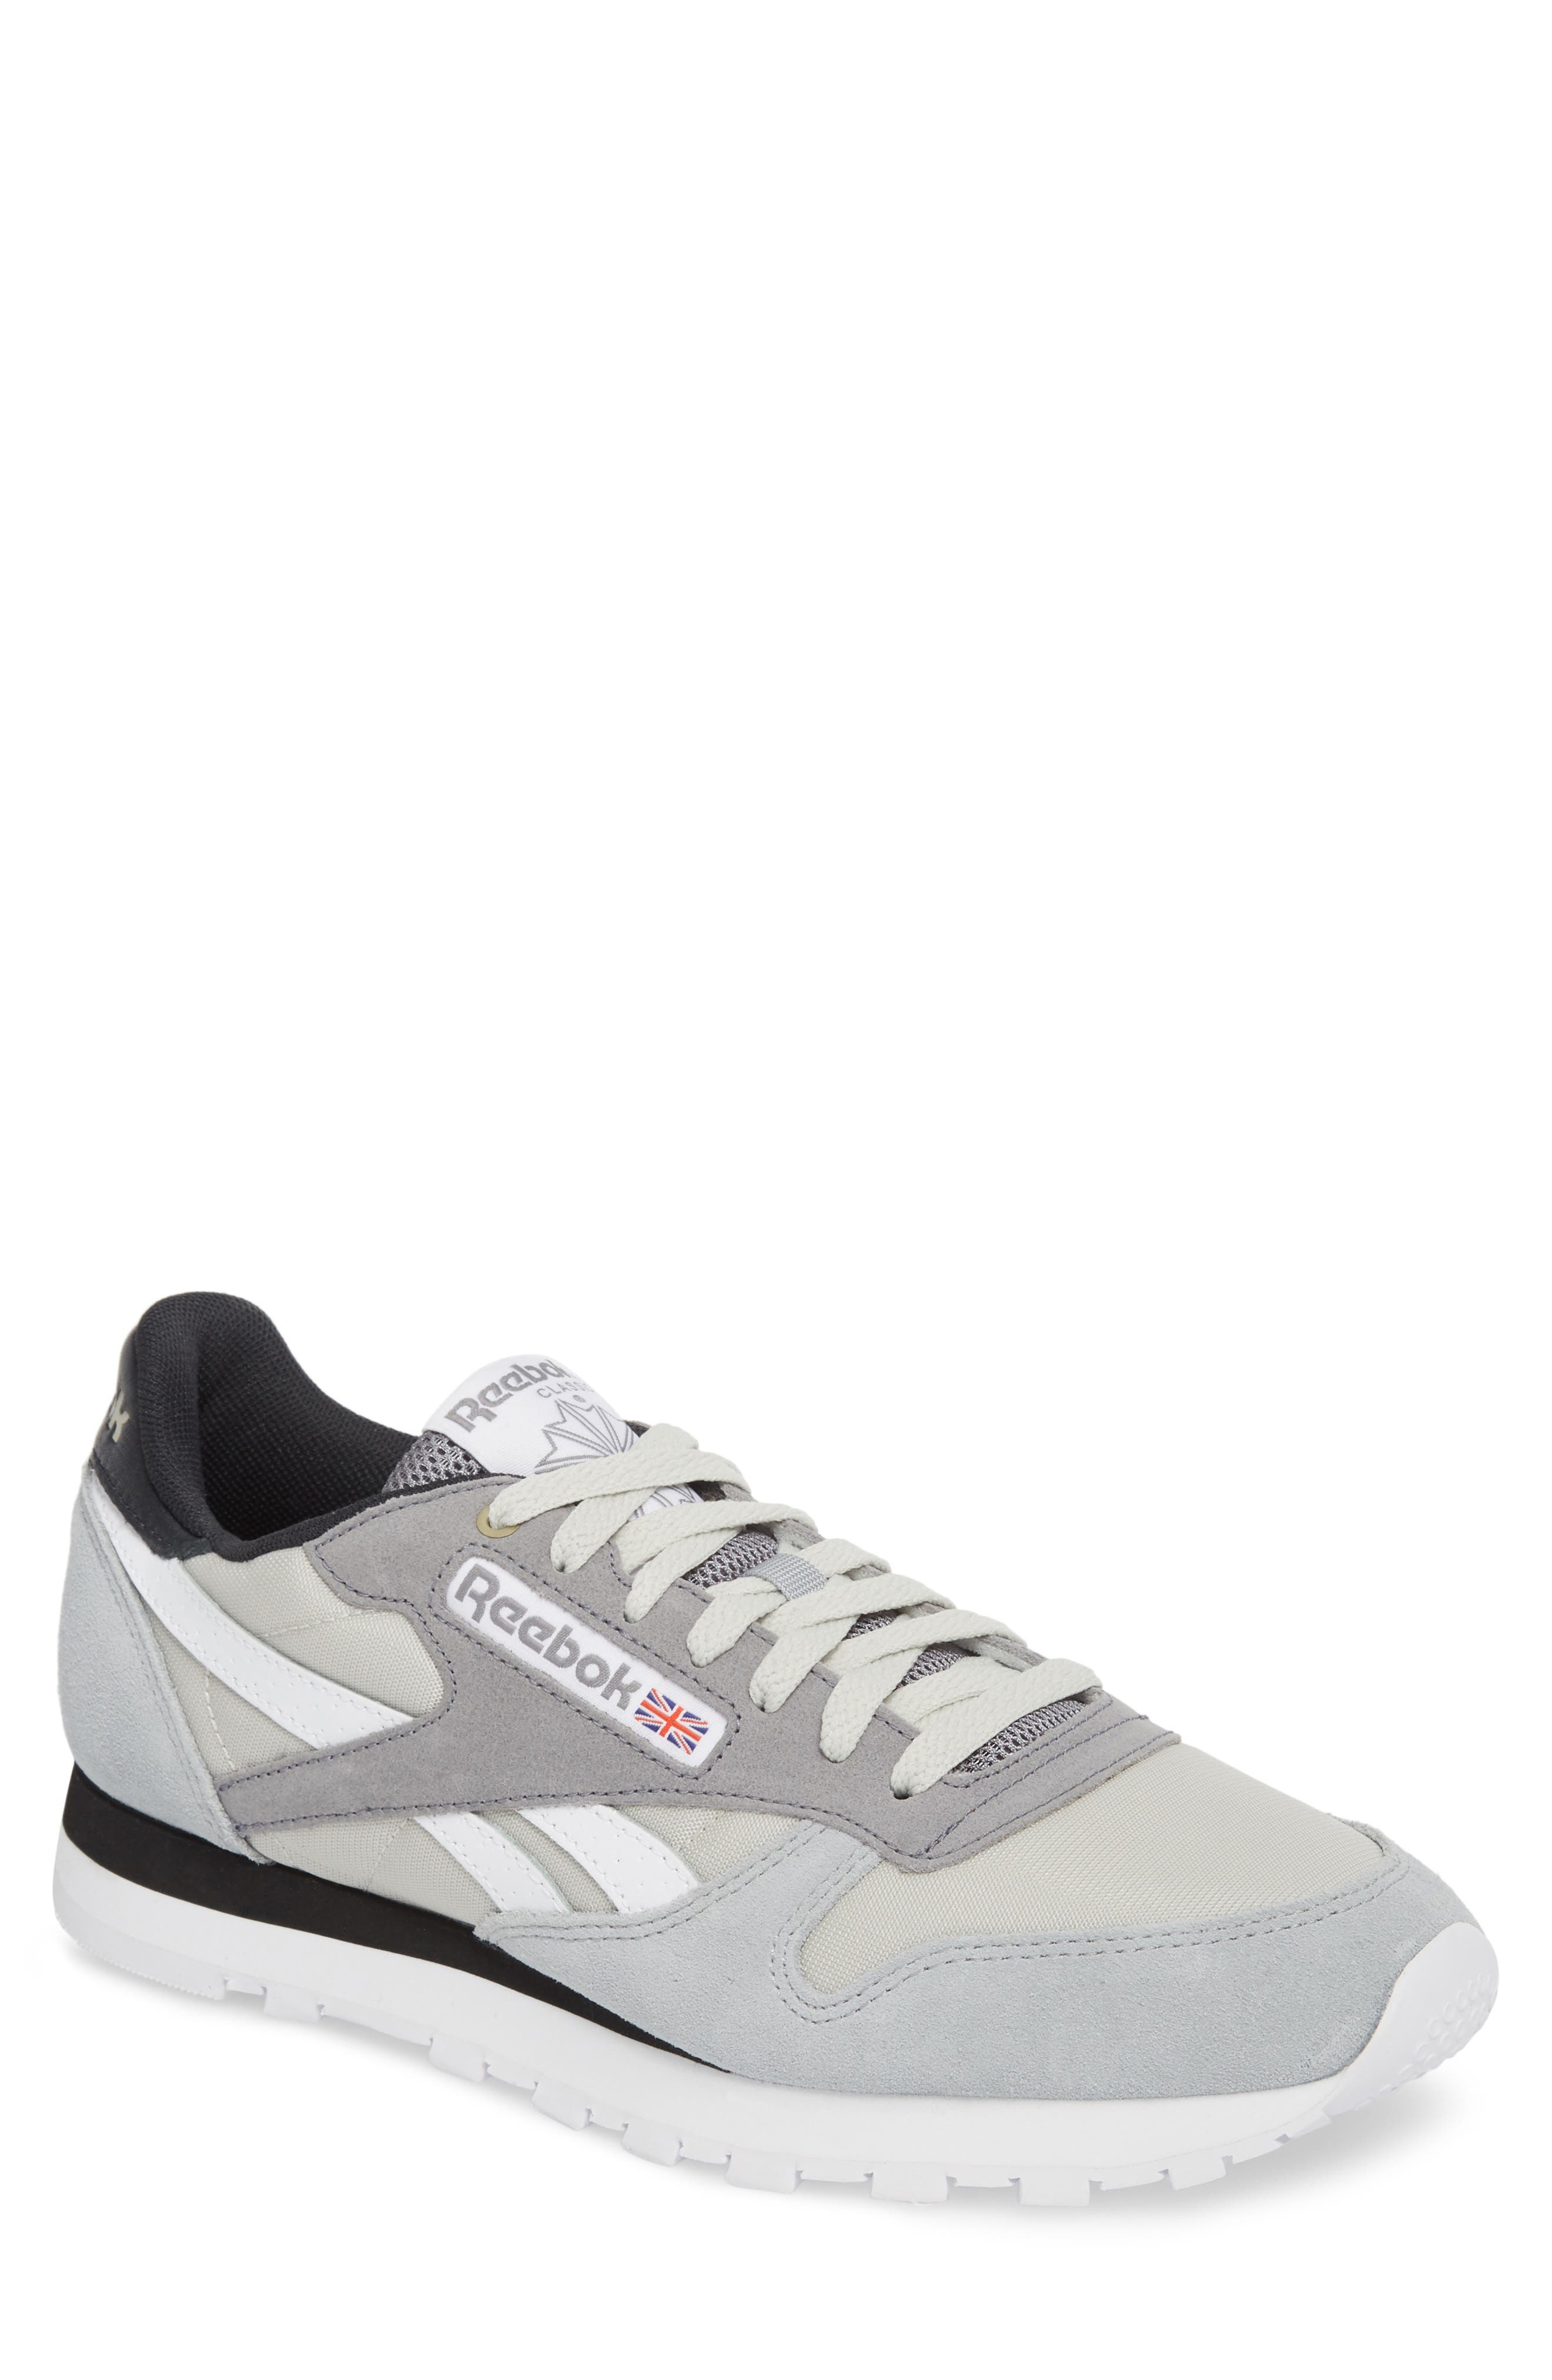 Classic Leather MCCS Sneaker,                             Main thumbnail 1, color,                             Grey/ White